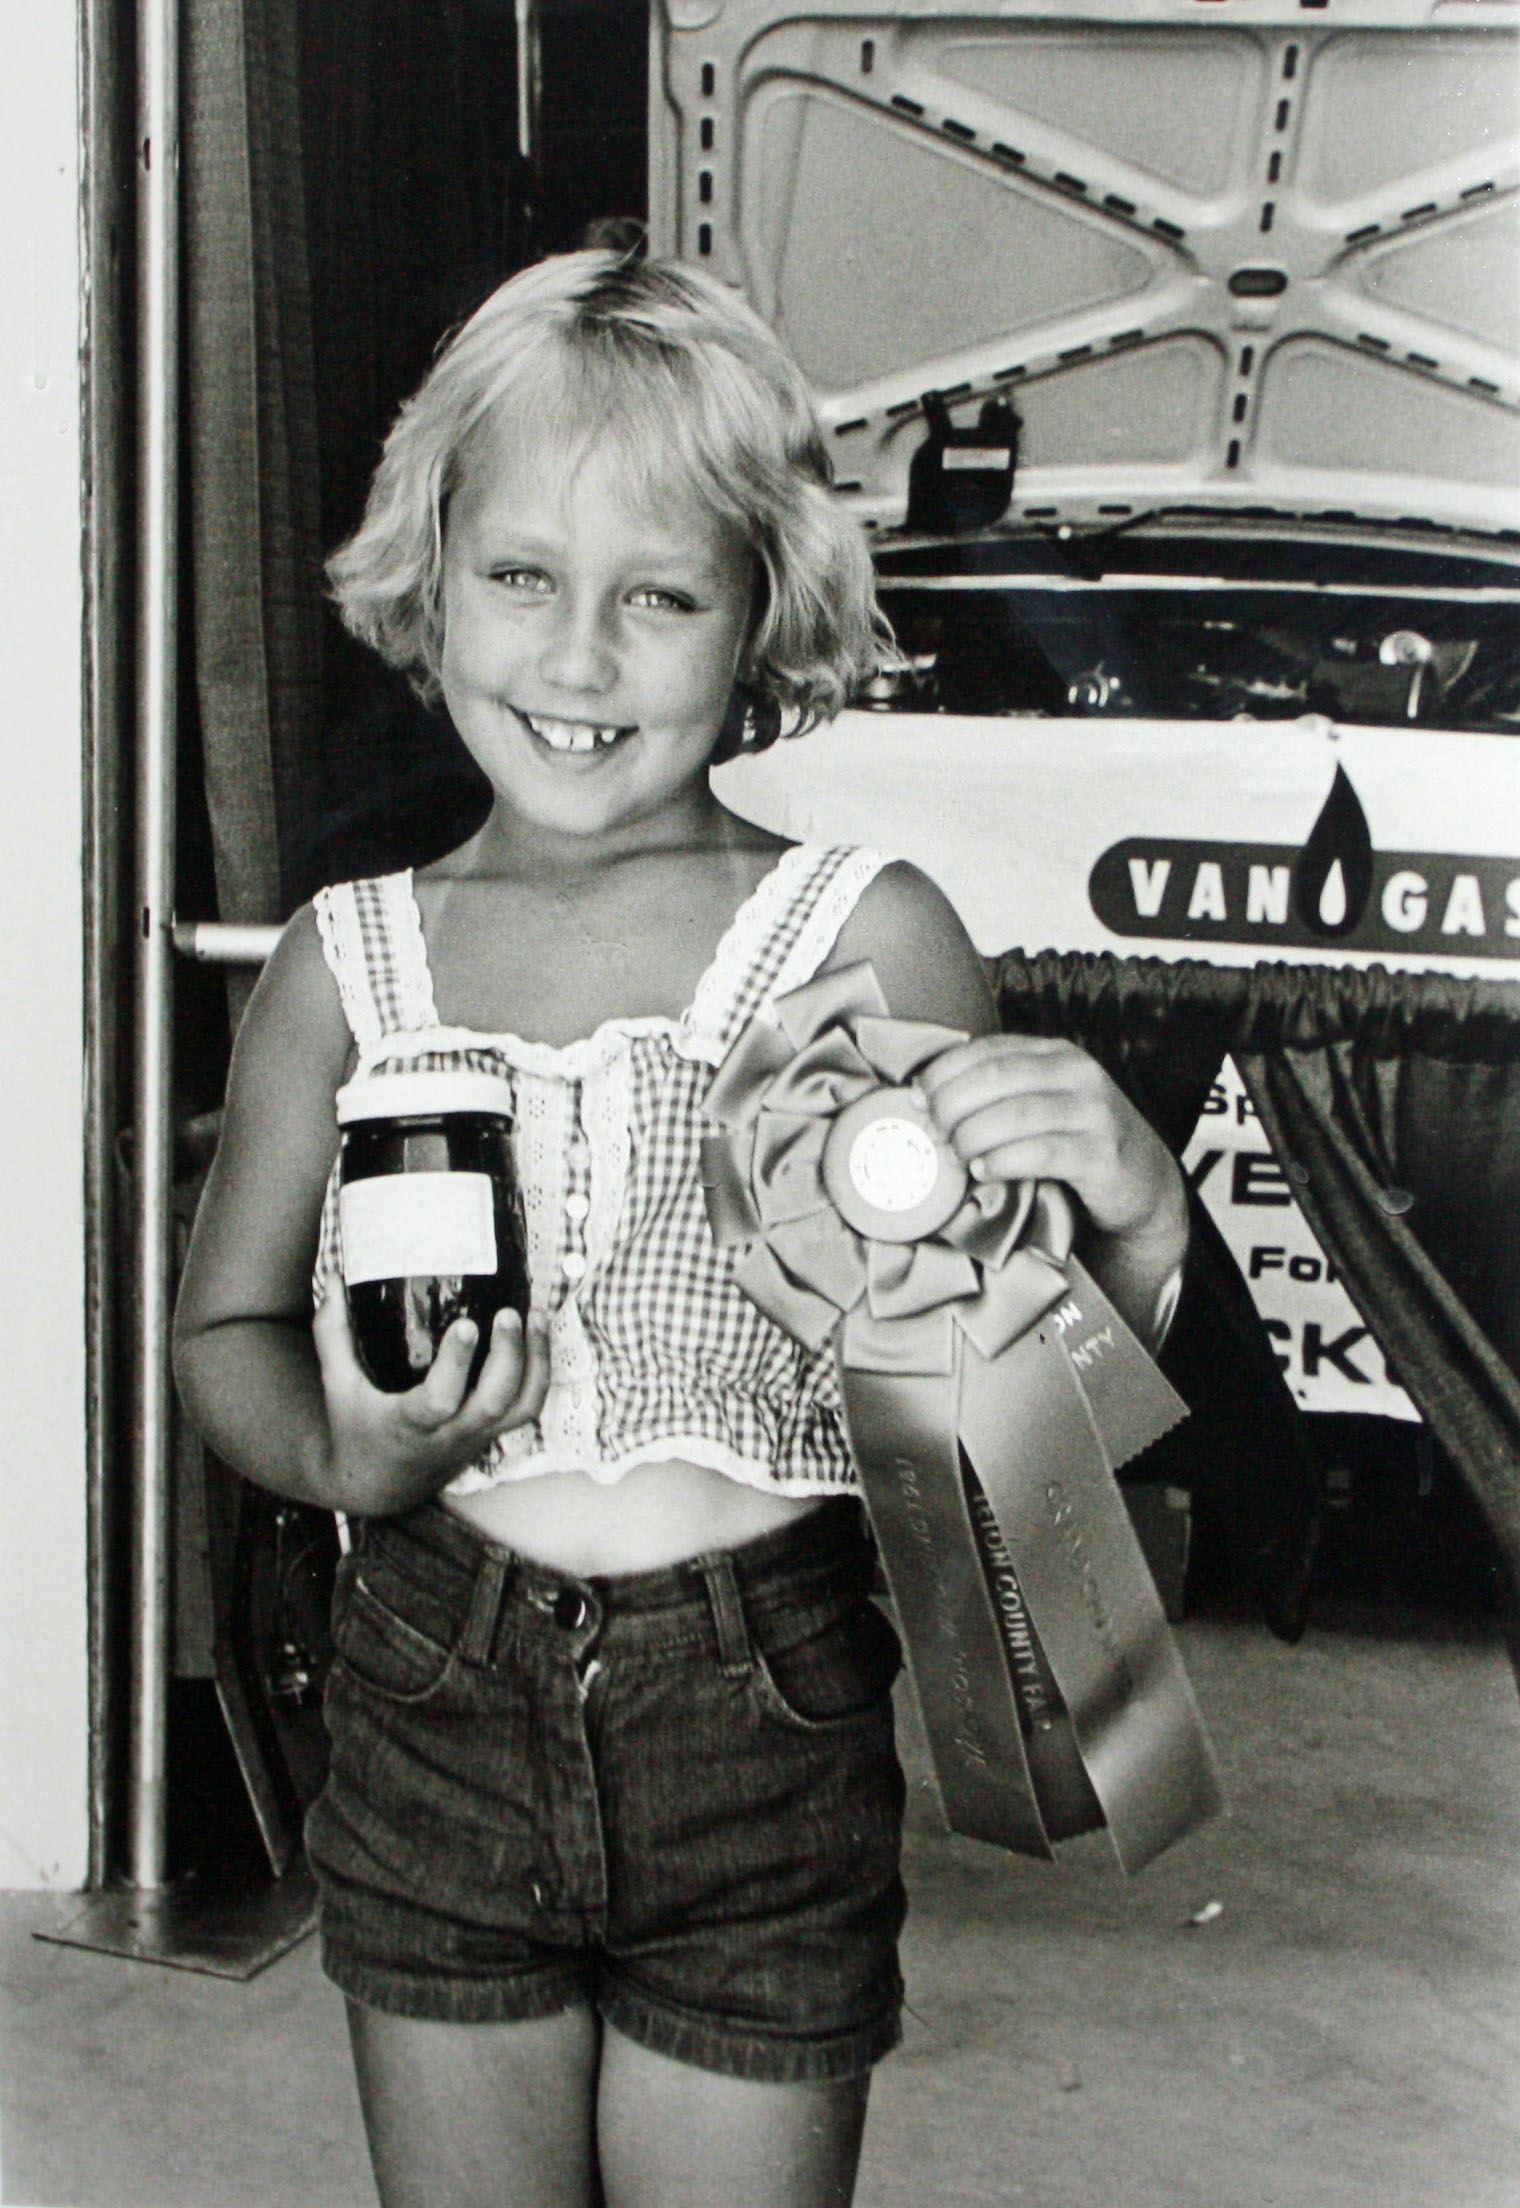 4-H Girl With Jam